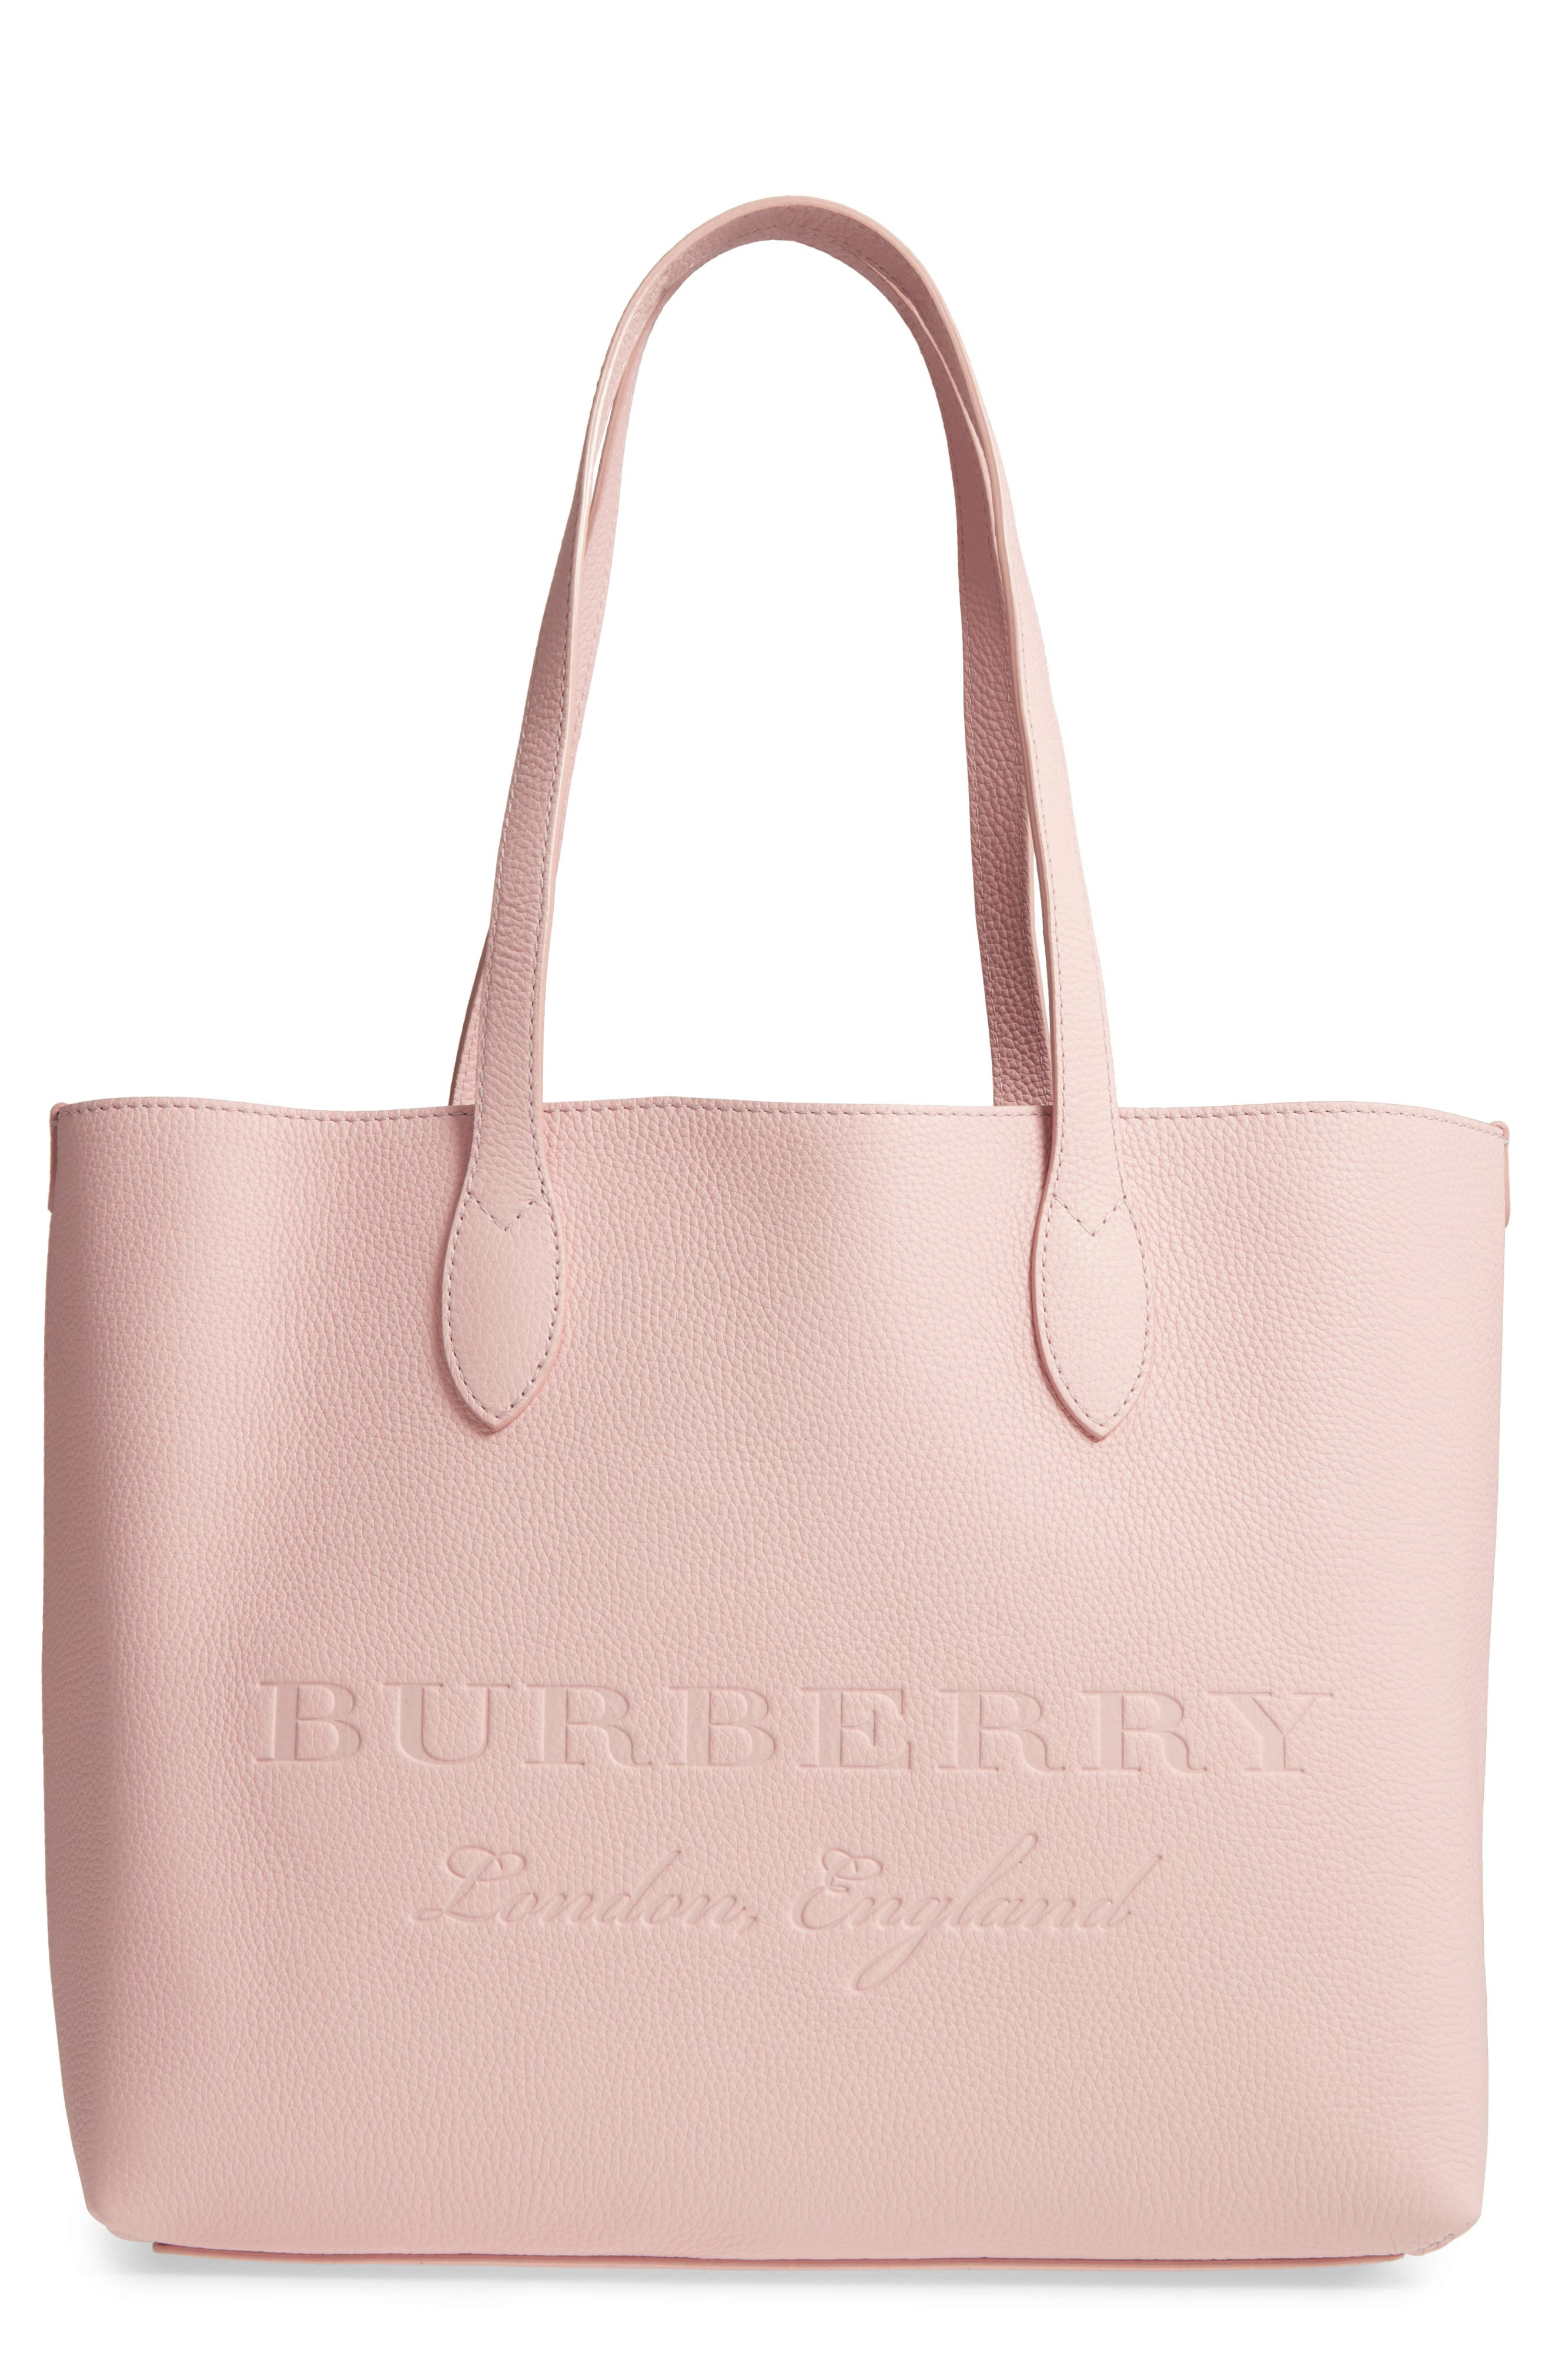 Remington Leather Tote,                         Main,                         color, Pale Ash Rose